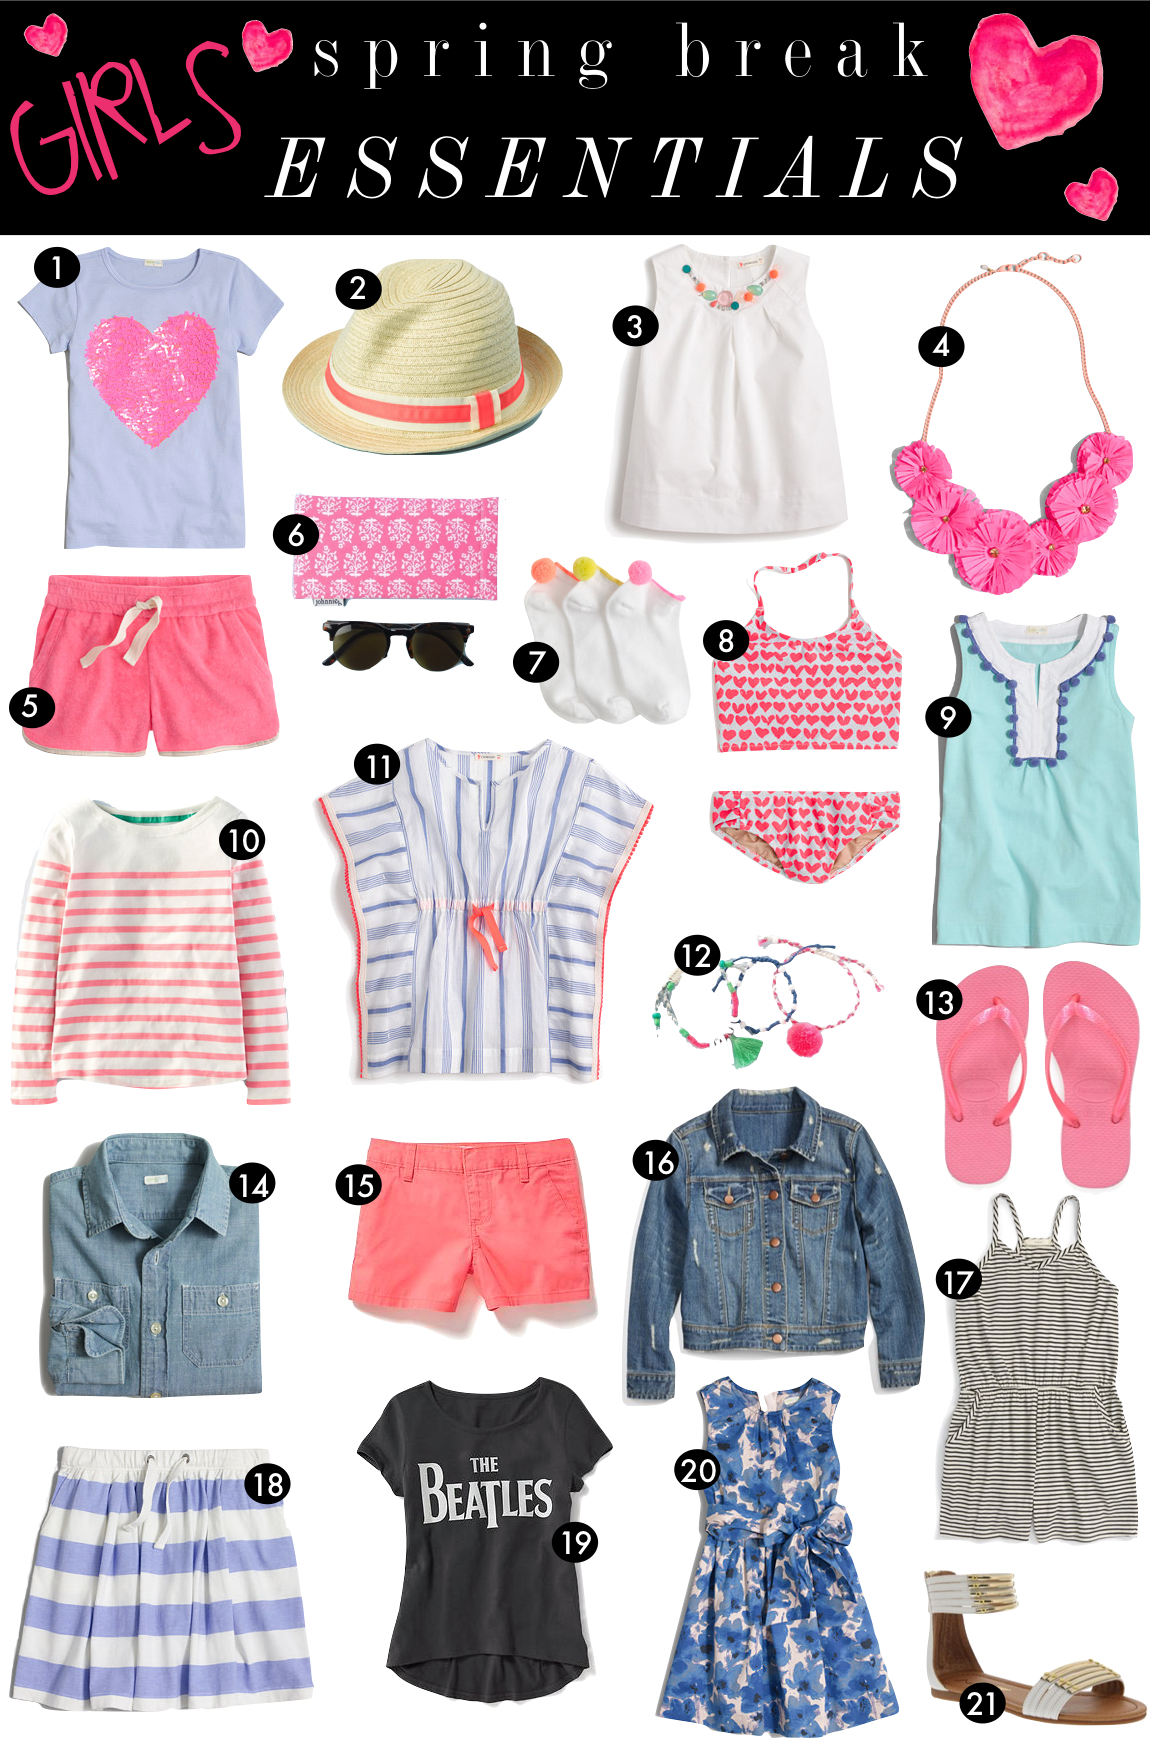 Girls Spring Break Essentials  |  Kiki's List